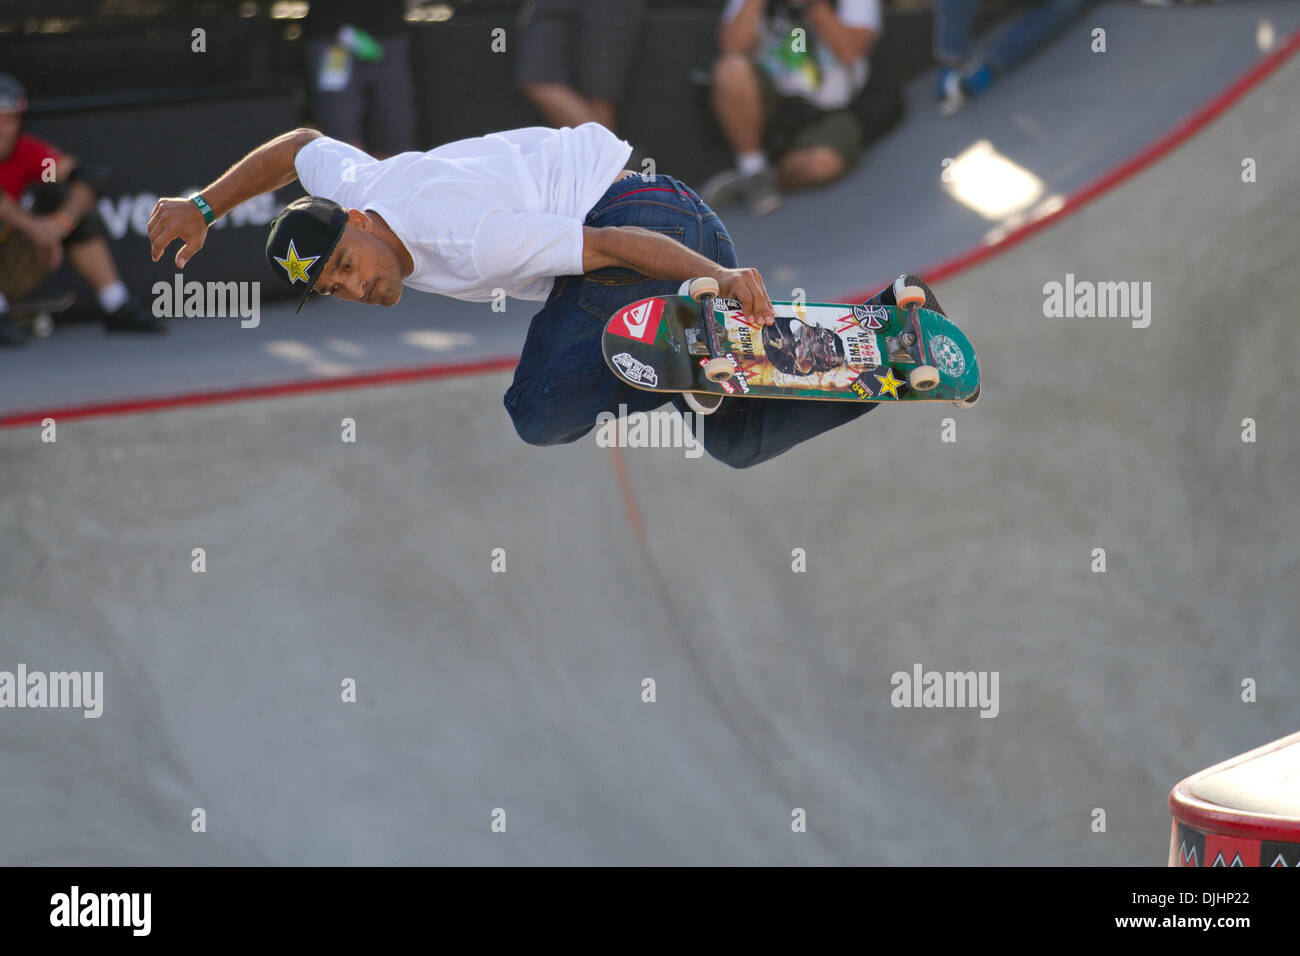 Aug. 01, 2010 - Los Angeles, CA, U.S - 1 August 2010:  Omar Hassan airs over the gap in Skateboard Park at the X Games in Los Angeles, CA. (Credit Image: © Josh Chapel/Southcreek Global/ZUMApress.com) - Stock Image